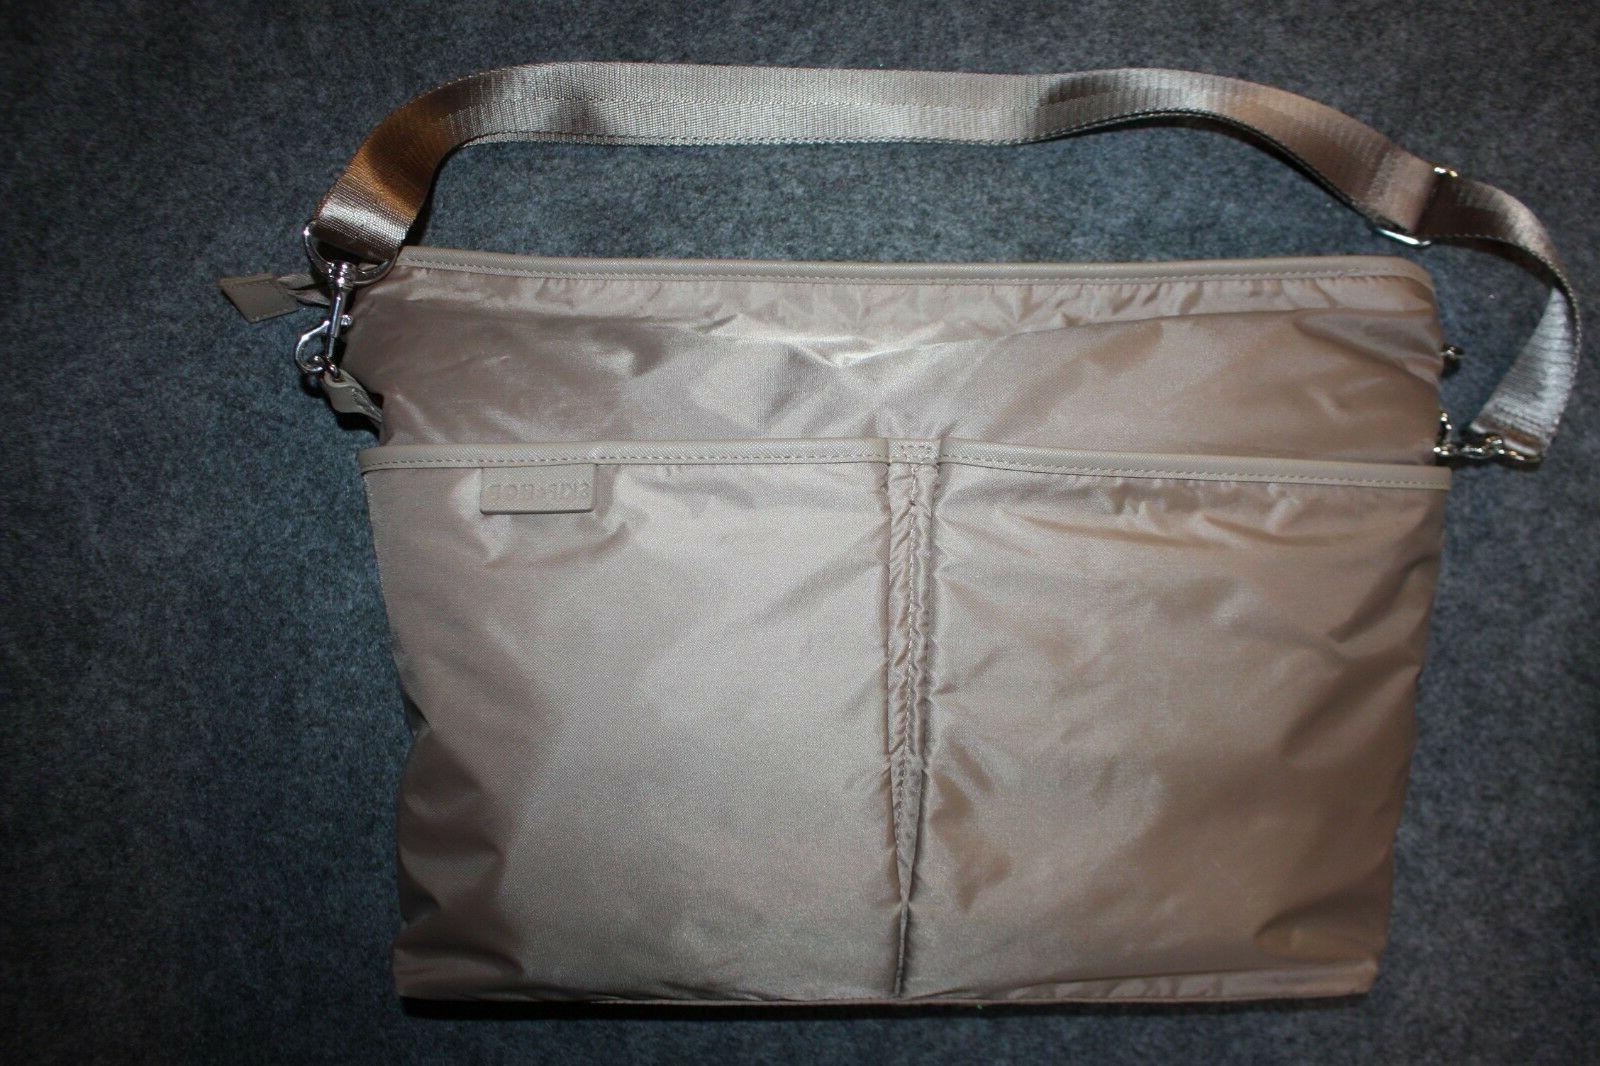 SKIP HOP DUET Crossbody the 2-in-1 Diaper - Taupe